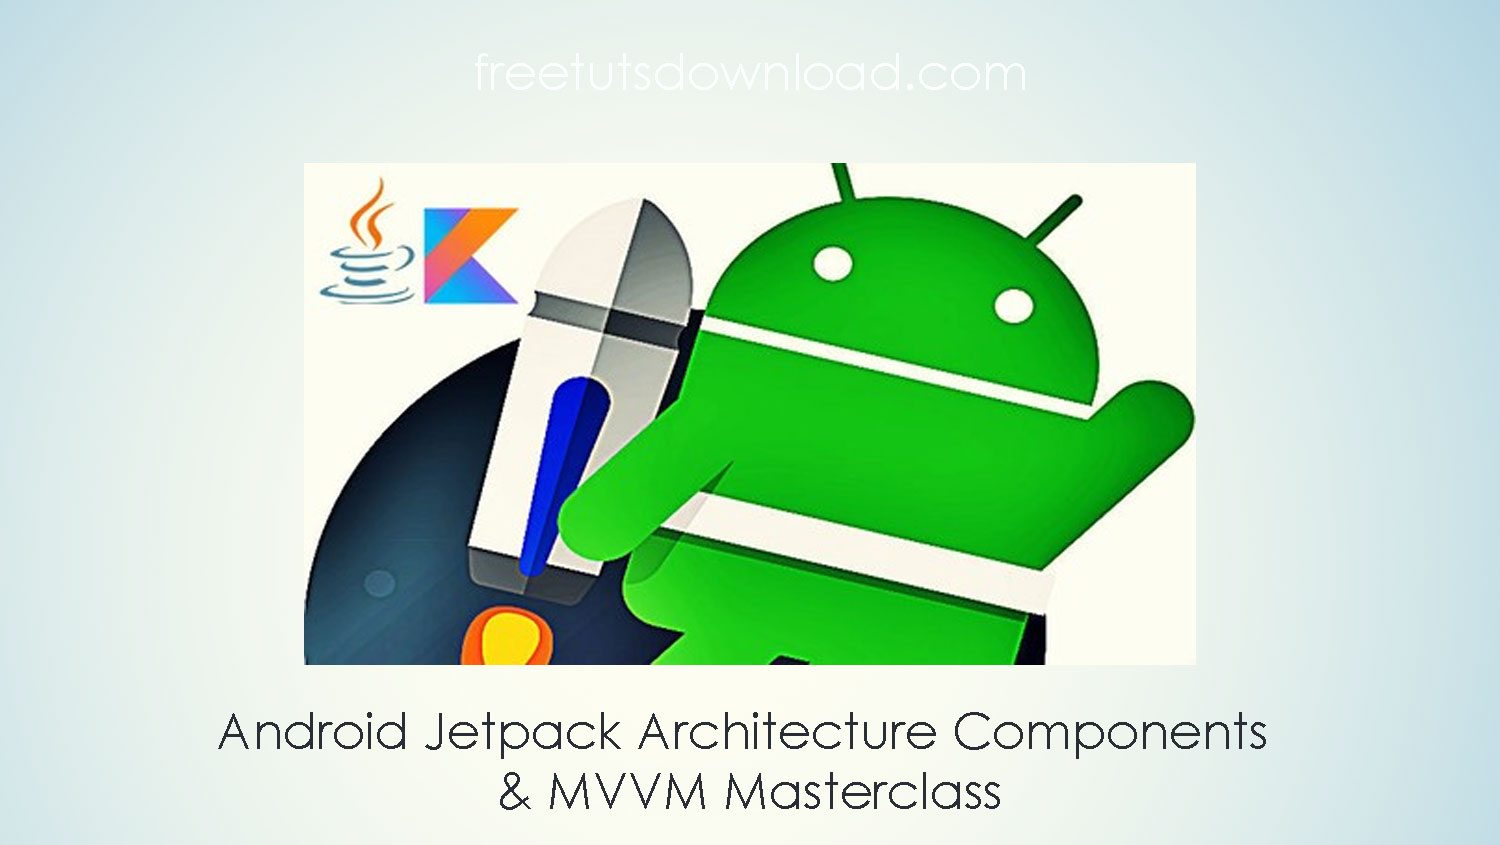 Android Jetpack Architecture Components & MVVM Masterclass